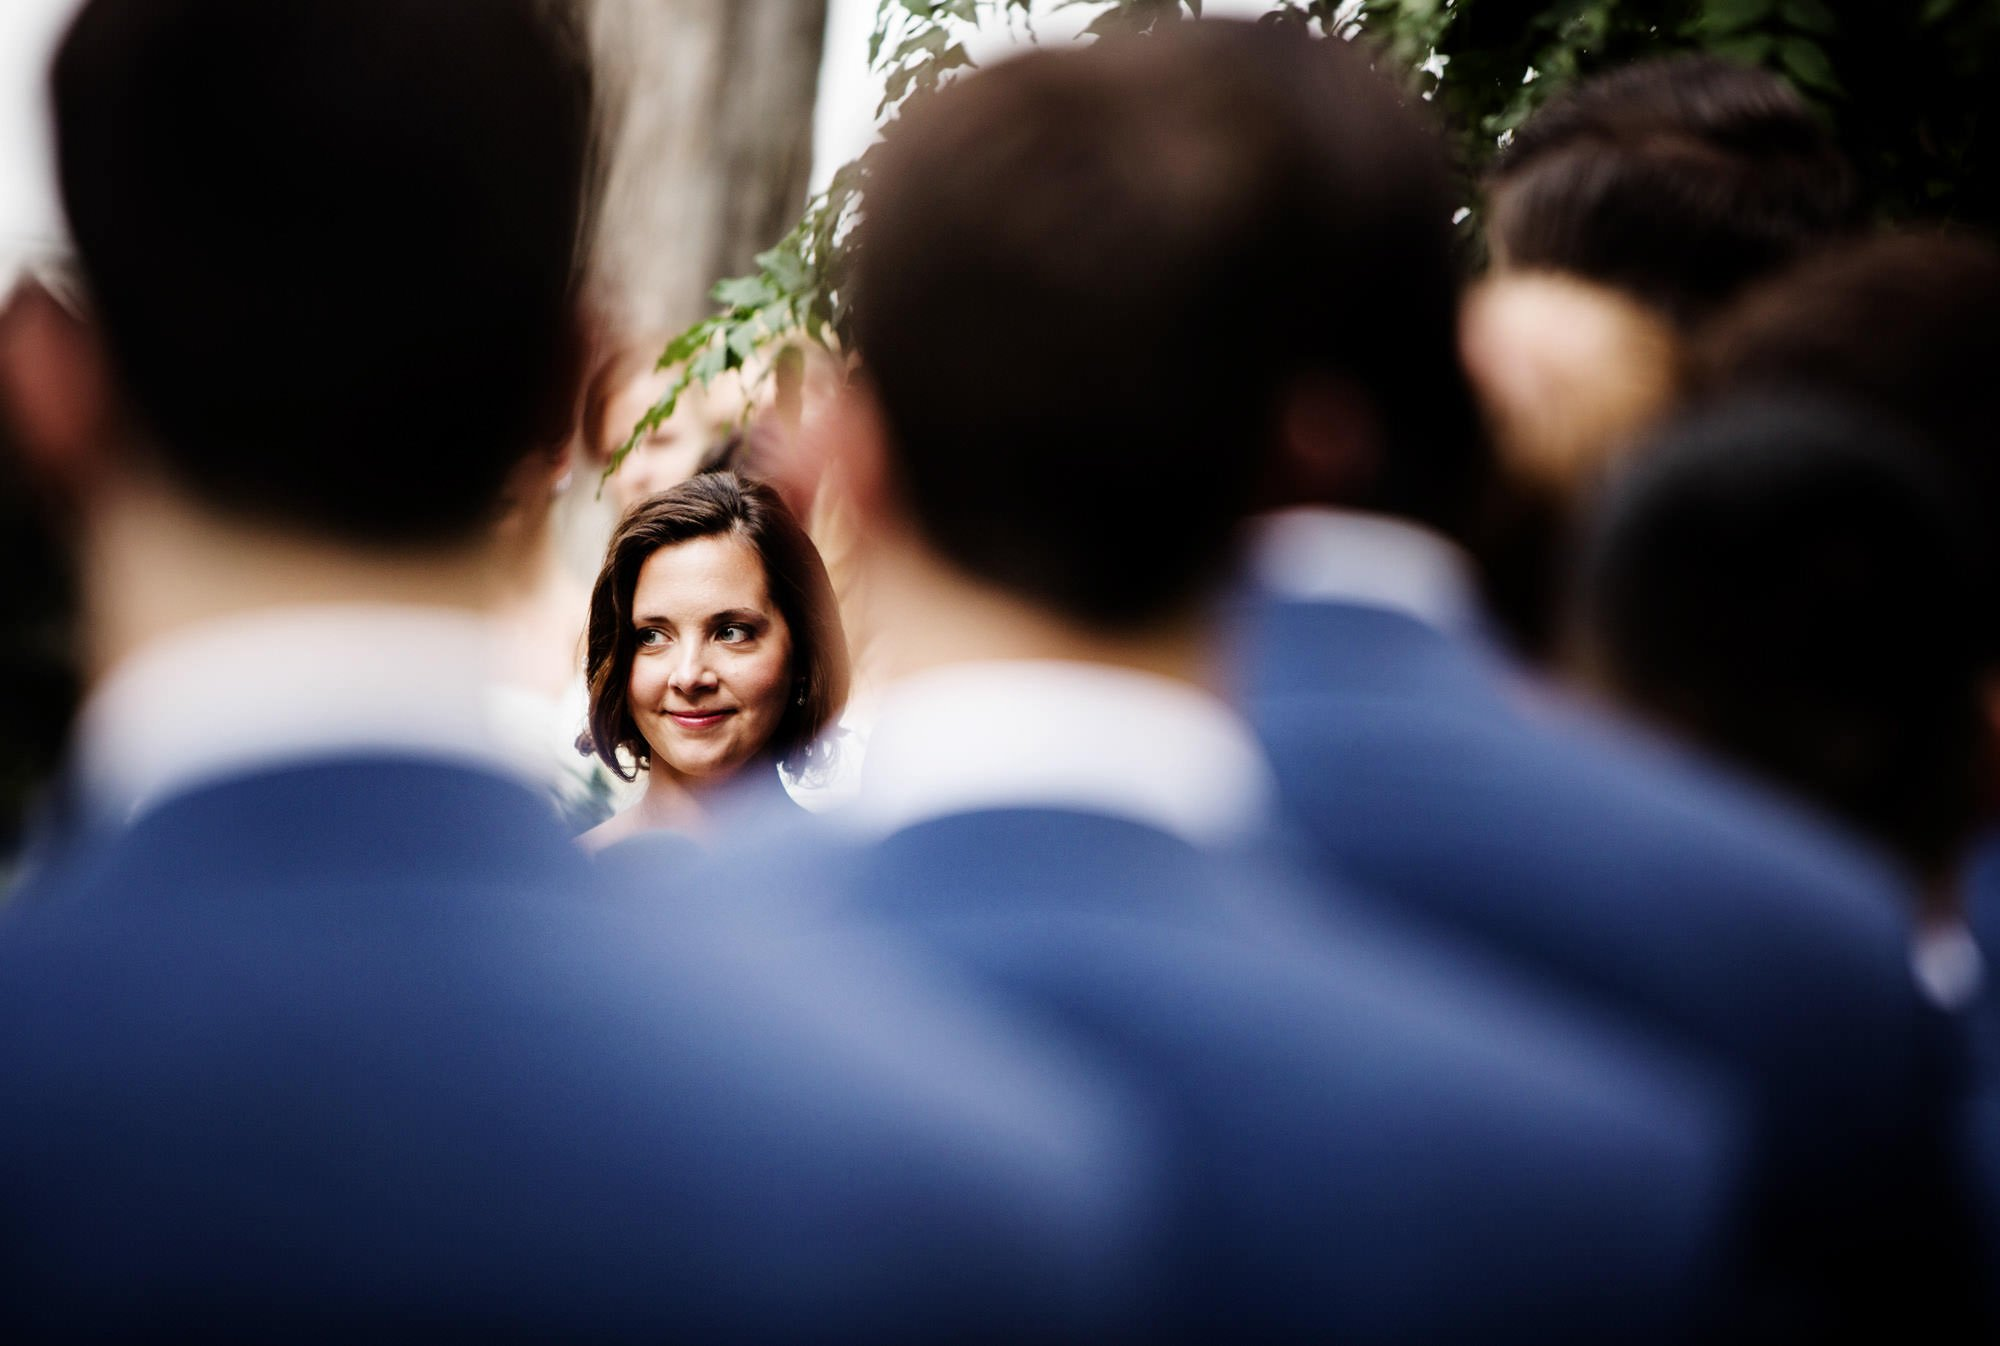 The bride looks at her groom during the wedding ceremony.